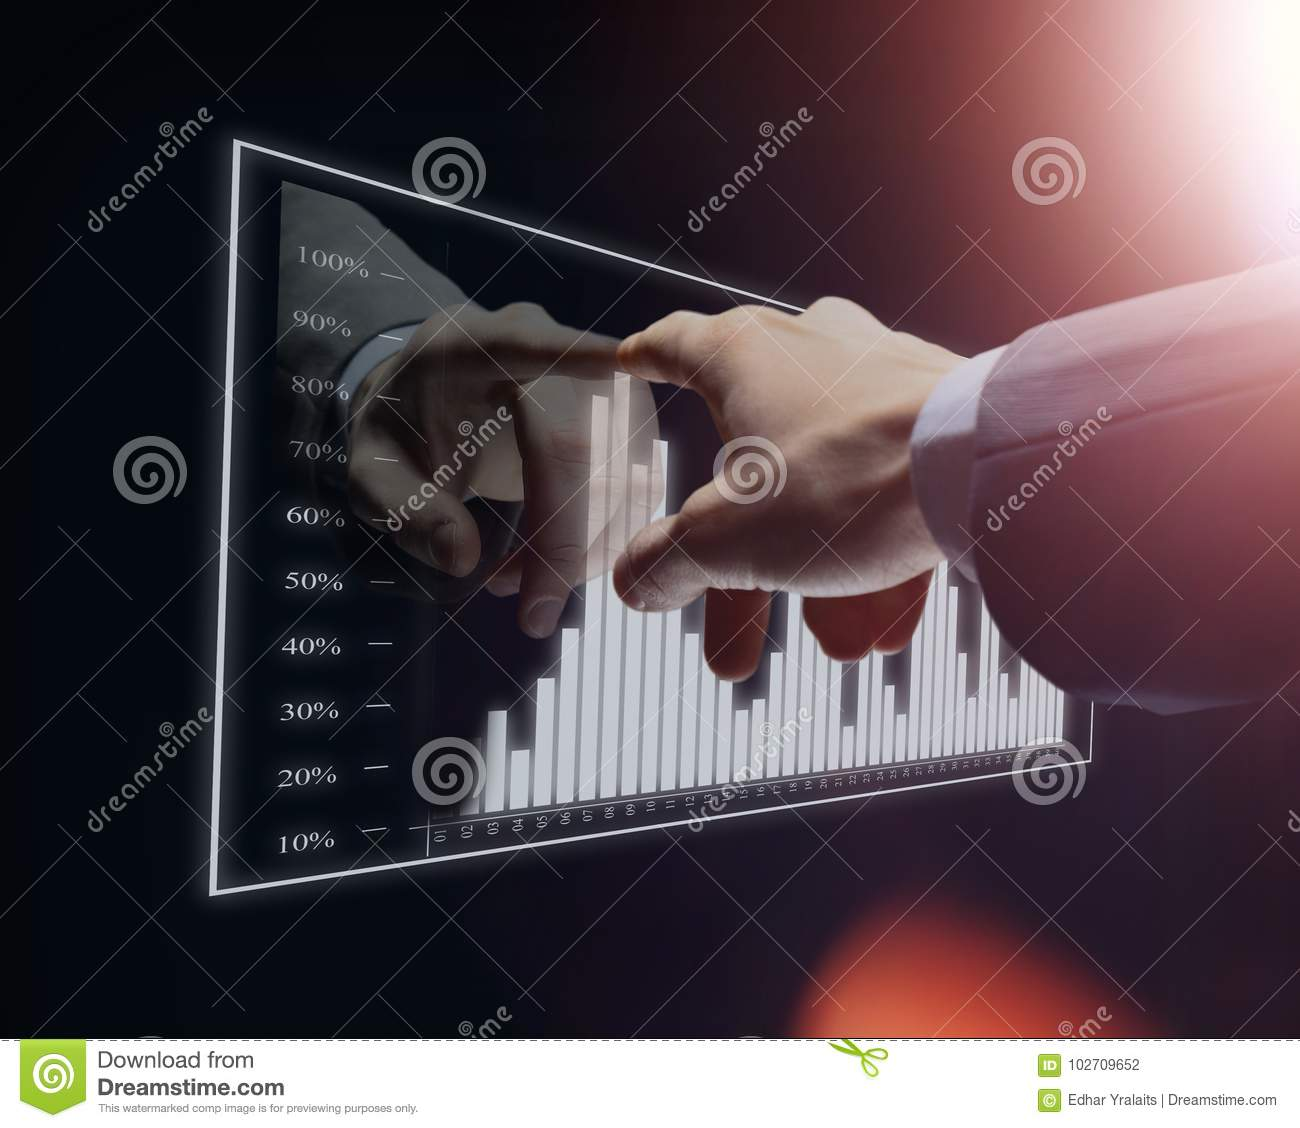 Diagram Of Hand Touch Worksheet And Wiring Switch Circuit Businessman Virtual Stock Photo Image Rh Dreamstime Com Hands